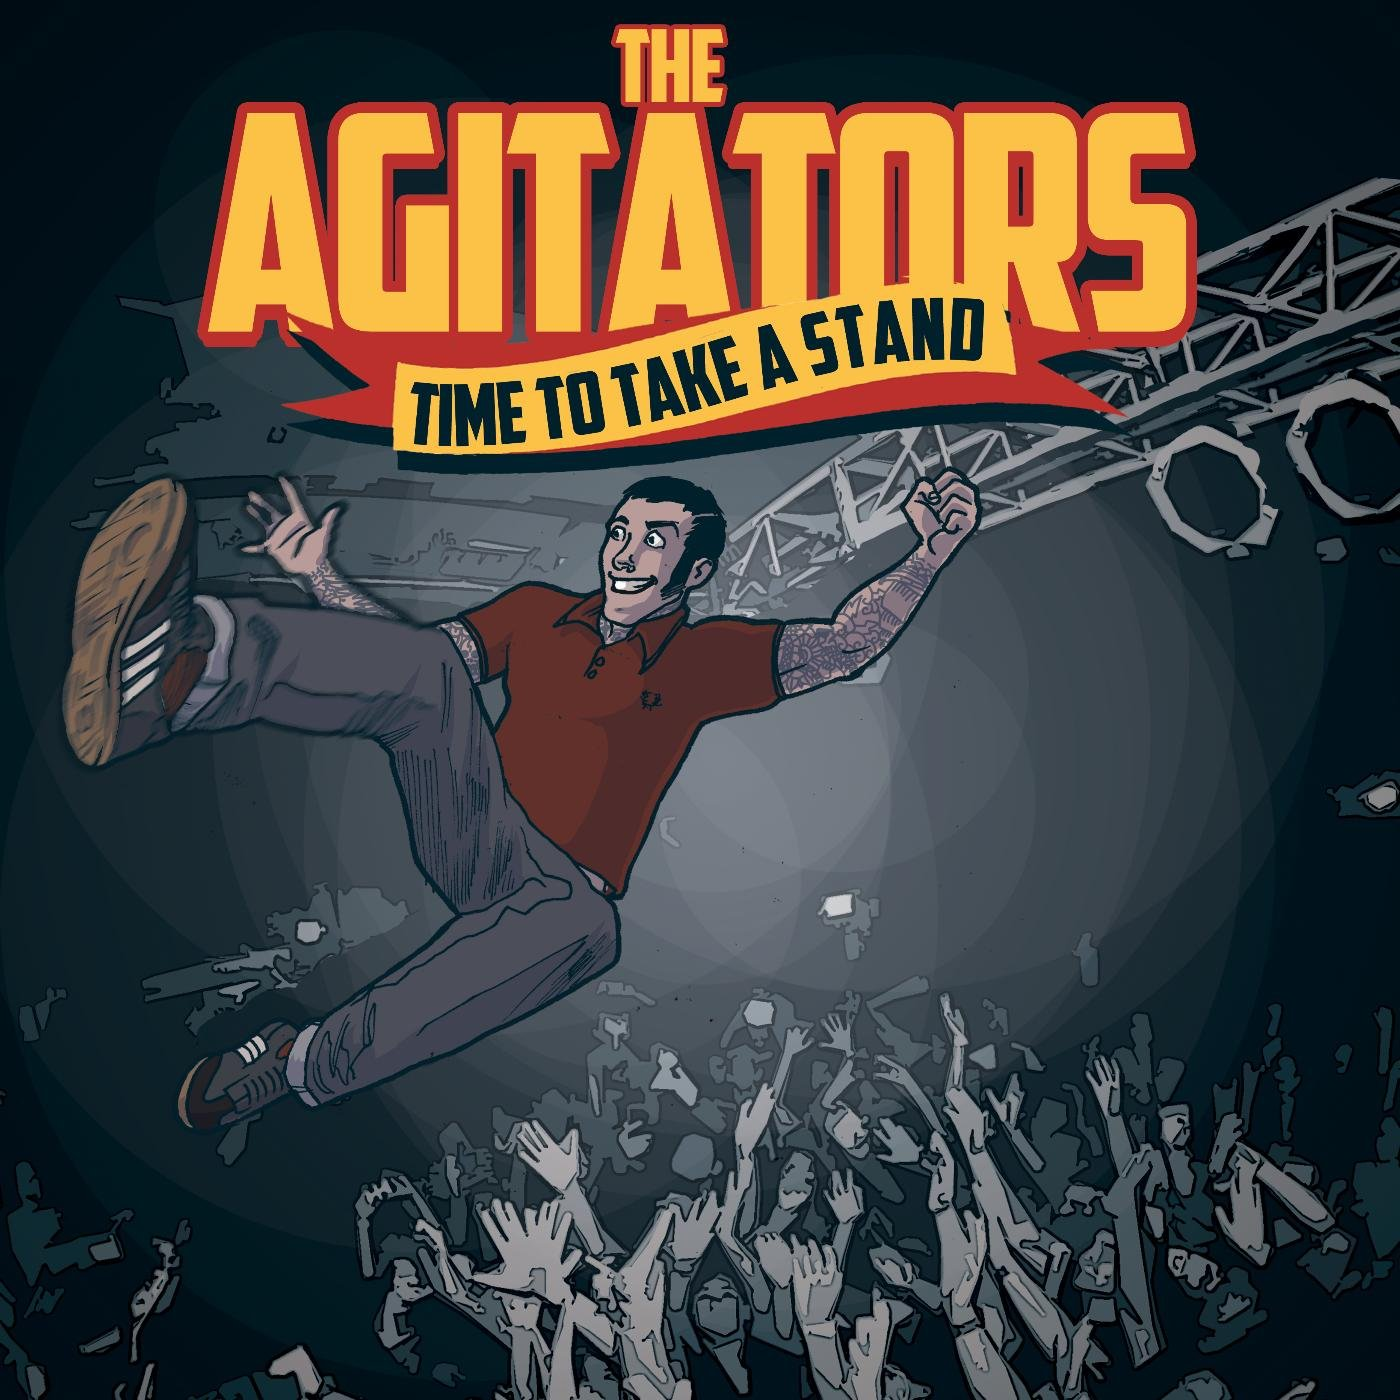 The Agitators - Time To Take A Stand (2015) [FLAC] Download